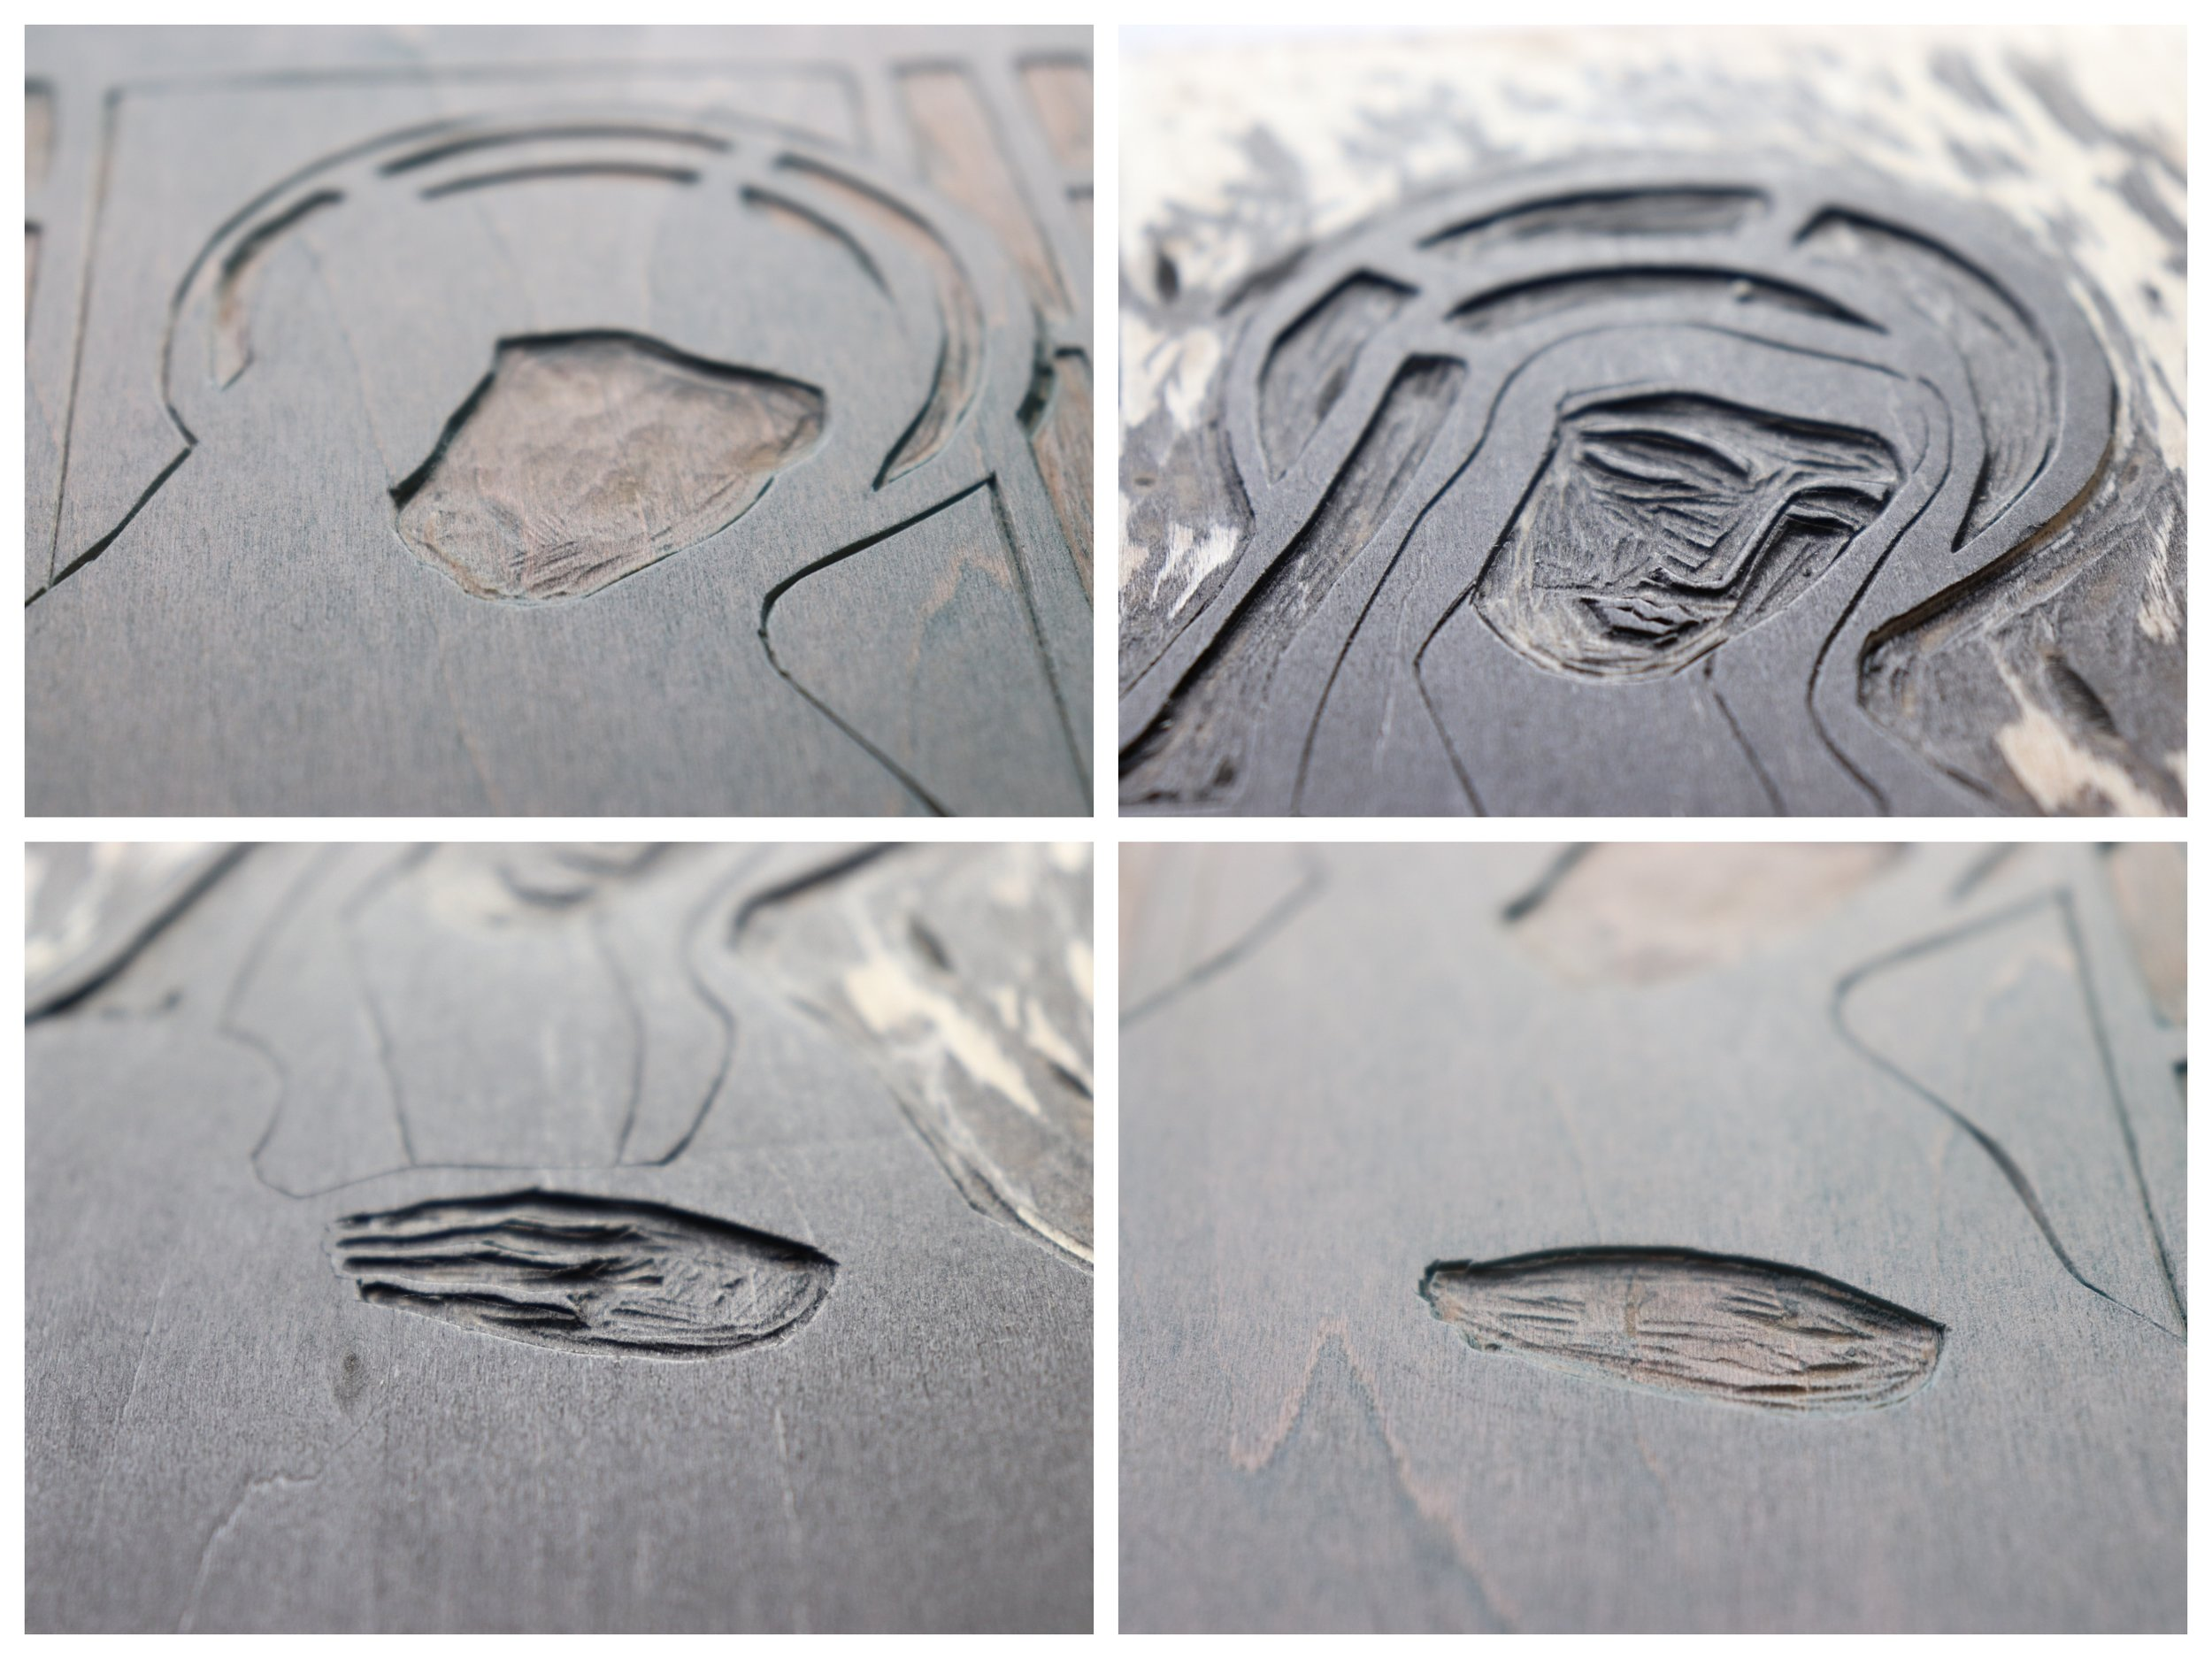 Details of carved woodblock for a collection of woodblock prints 'In Praise of Saints'. Exhibiting at Centre Space Gallery from May 12th 2019.